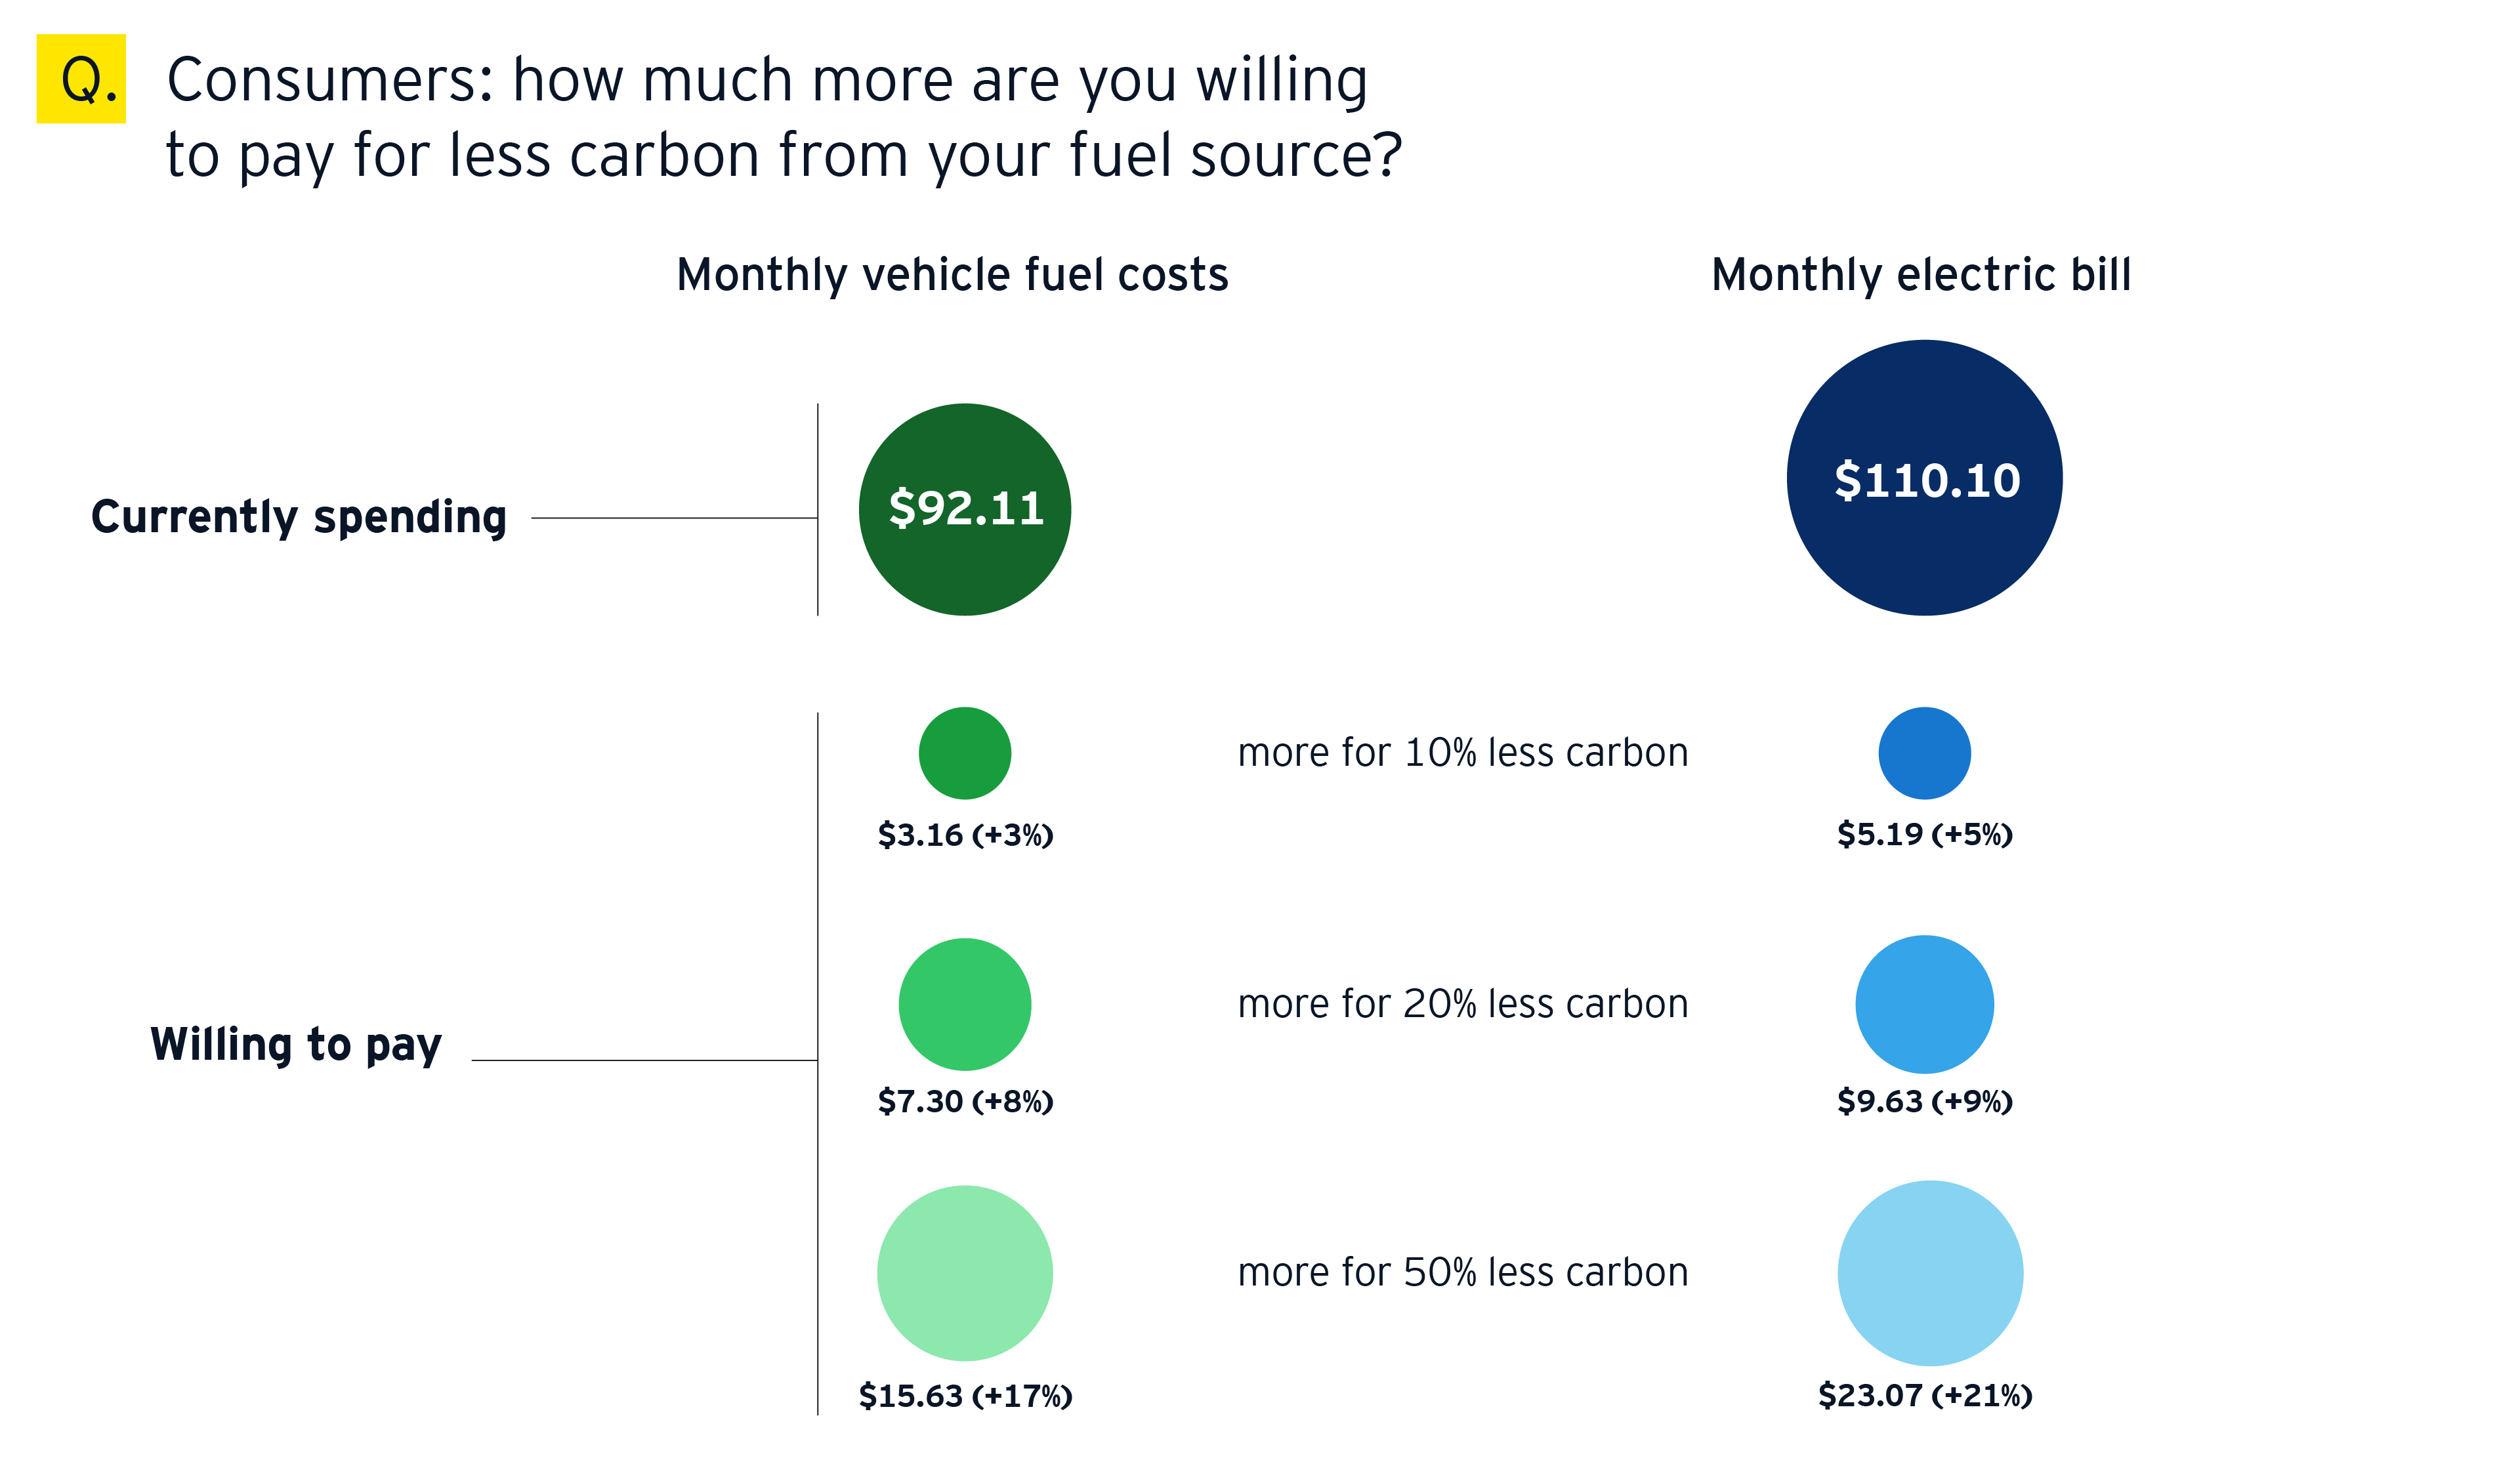 Consumers: how much more are you willing to pay for less carbon from your fuel source?